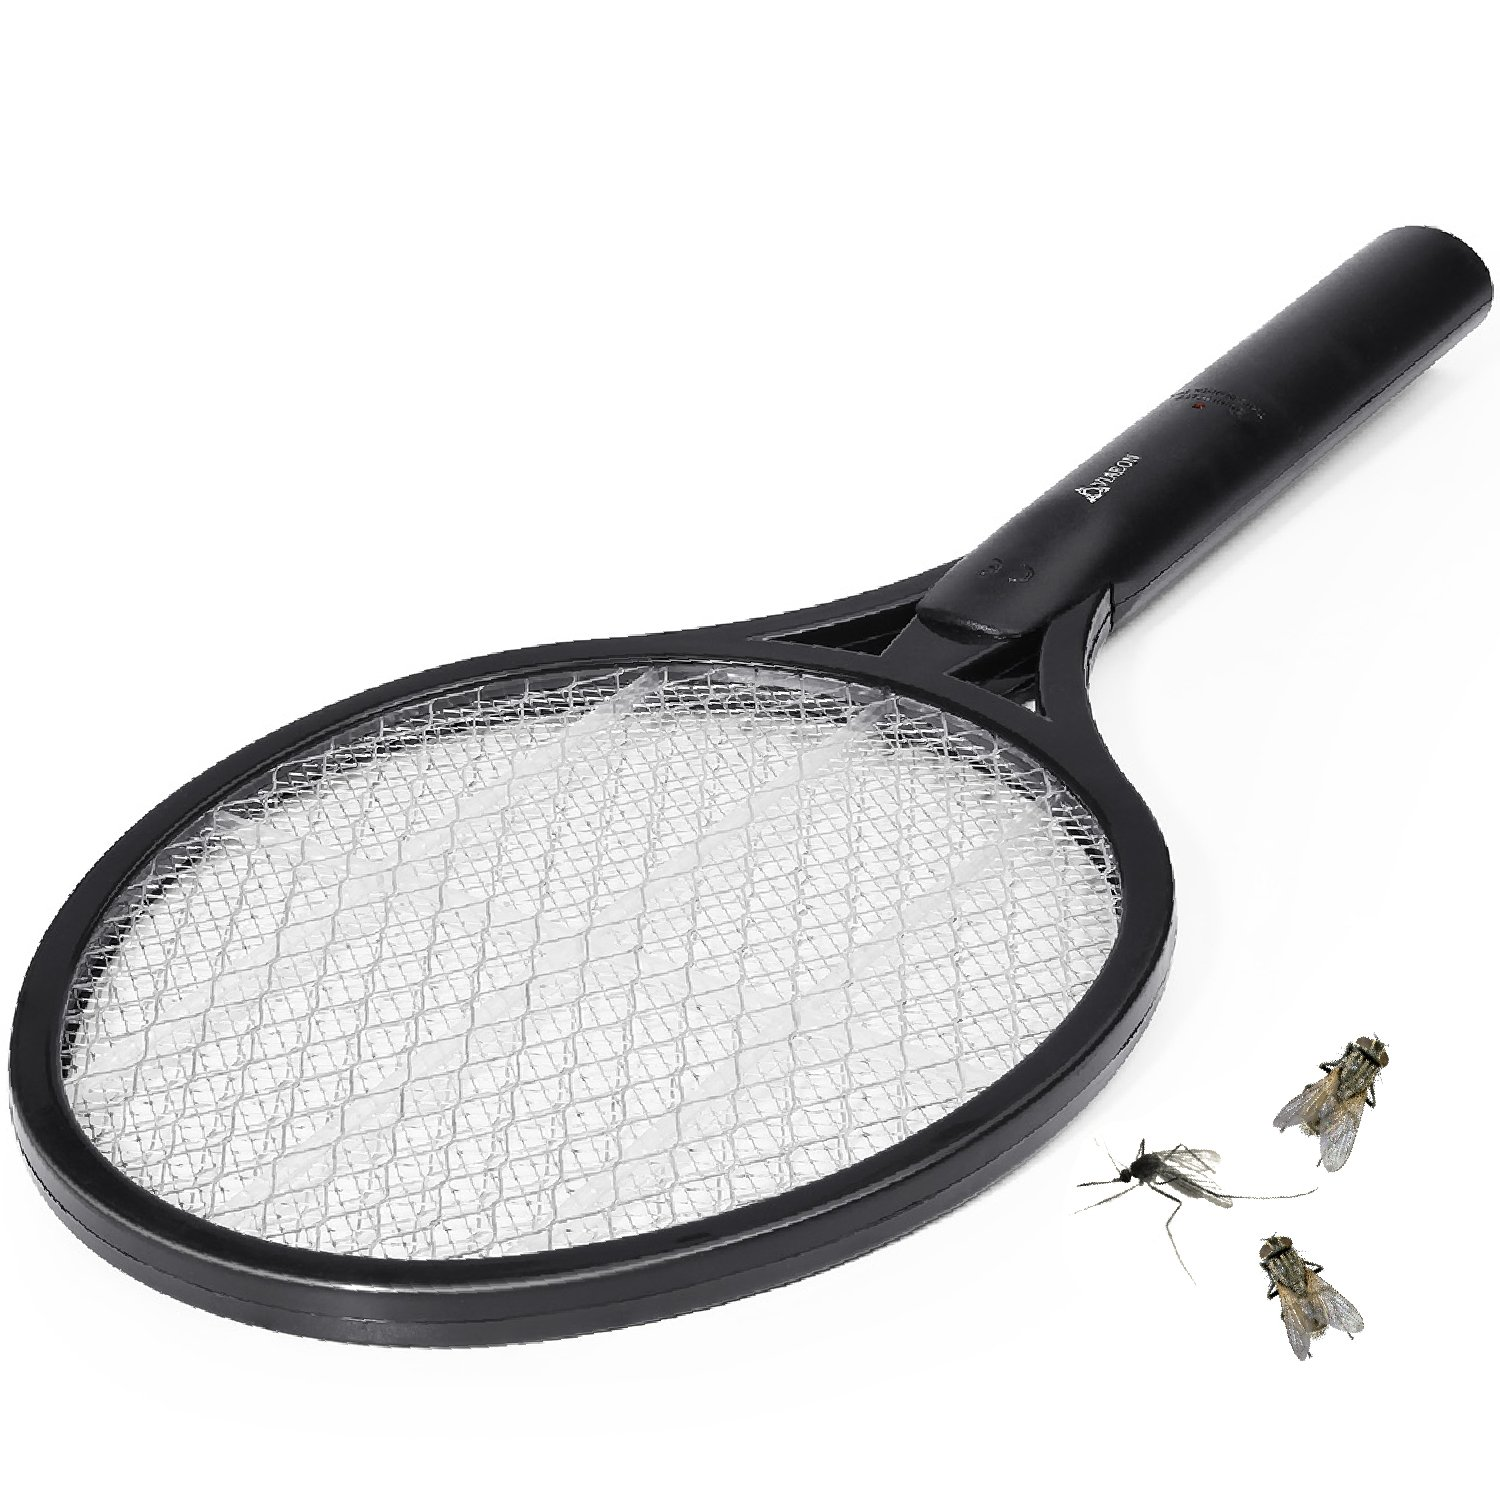 VIAEON Electric Fly Swatter Wasp Trap Mosquito Fly Killer Electric Bug Zapper